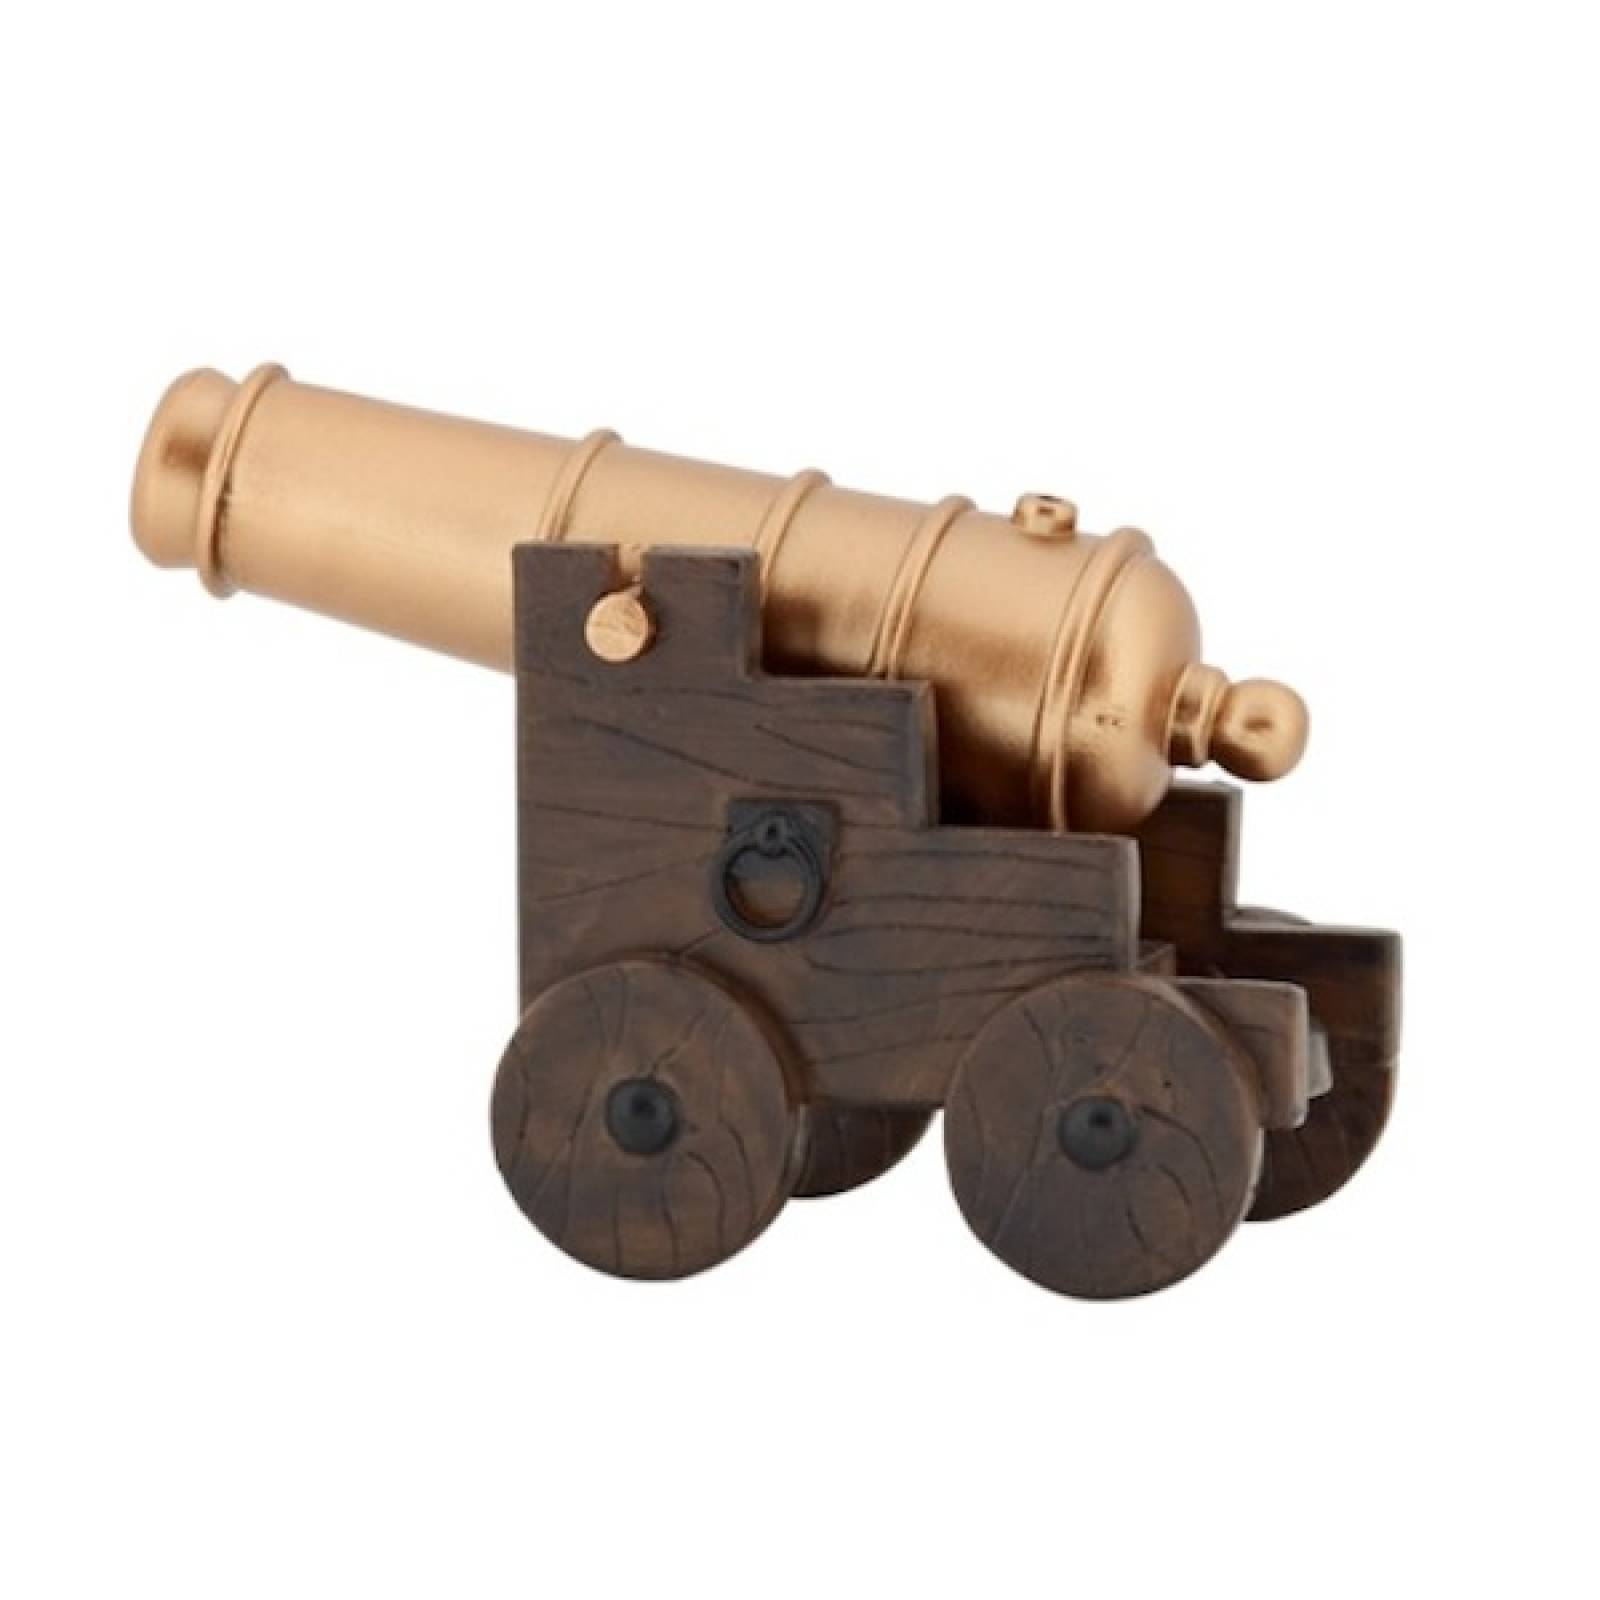 Cannon for PAPO Knights or Pirates